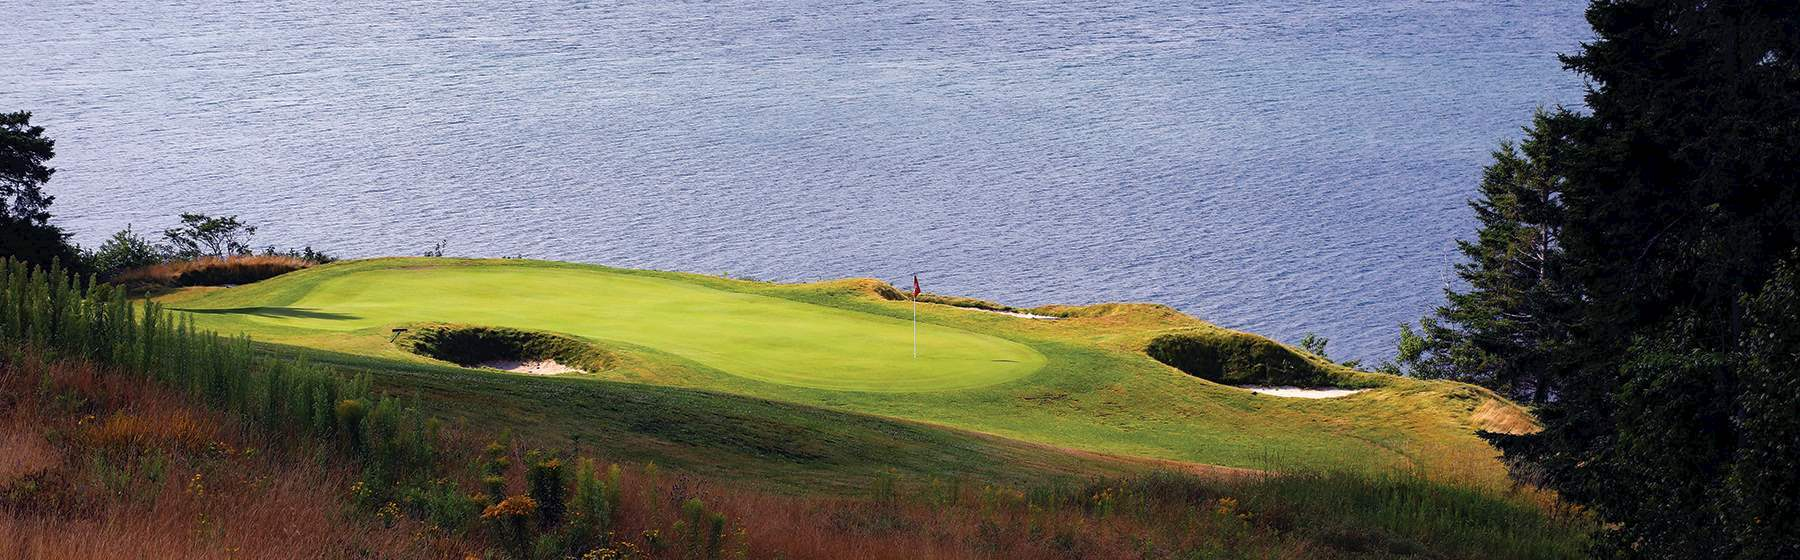 Golf history at Algonquinresort,Andrews By The Sea